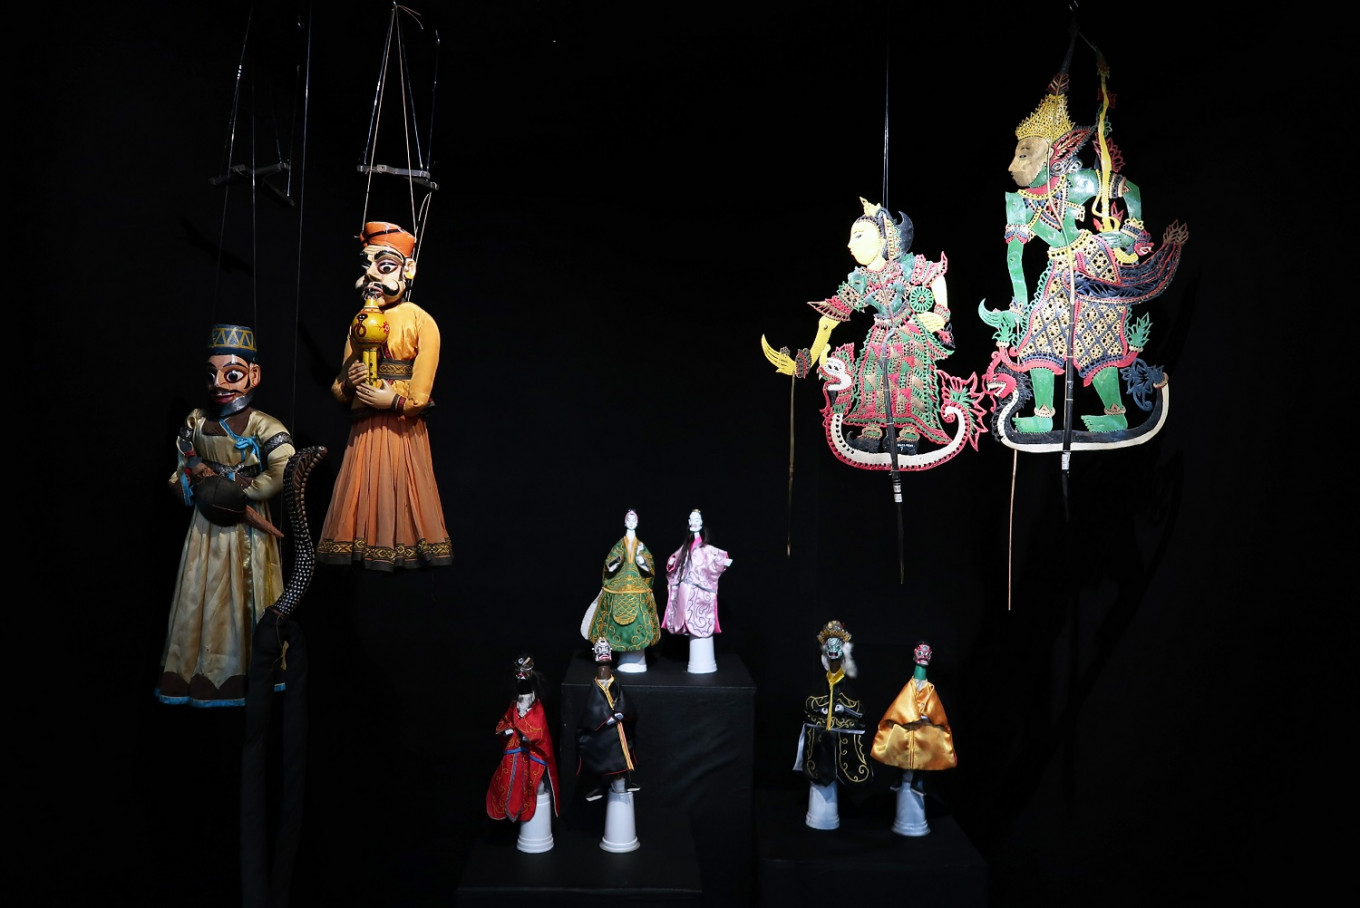 Thai, Indian and Chinese puppets on display in the lobby of Hotel Indonesia Kempinski in Central Jakarta.